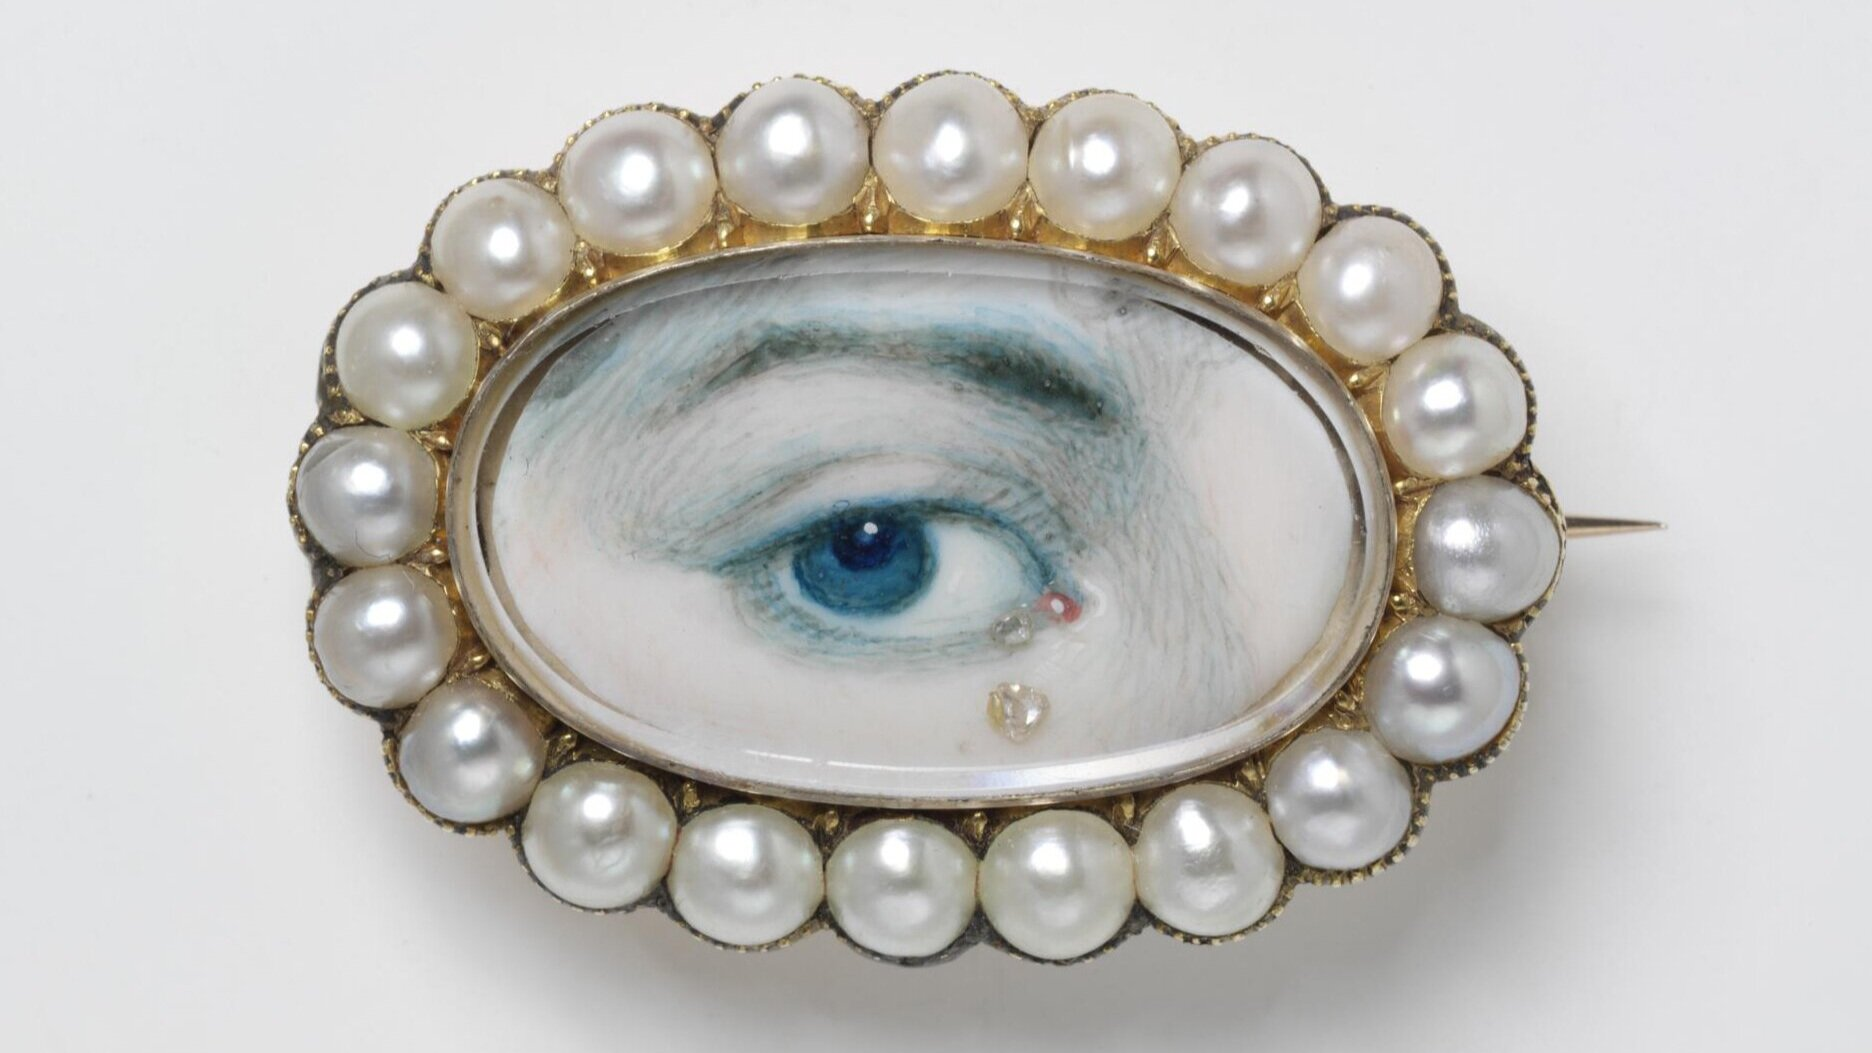 """What is a Lover's Eye?  Today we may send a selfie to our partner, but between the 1780s and 1820s, a Lover's Eye jewel was a secret way in which romantic relationships communicated. A painted miniature portrait of a person's eye, these tiny pieces were only centimeters in size and were exchanged between pining lovers. Due to their small stature, Lover's Eye jewellery could be both secretly or overtly worn, with the former for unknown courtships and the latter for public displays of affection.  The painted portrait was often crowned with gems and displayed in ovals, crescent moons or floral-like clusters to emphasise their inherent romantic nature. In many ways, these jewels were a literal jeweller's version of a synecdoche, with the eye communicating the whole being's intimate love and devotion. This one eye is the lustful watching gaze of their beloved, a """"look"""" that can only be understood between romantic partners.  In fact, eagle-eyed (pardon the pun) viewers may have noticed that this particular style of jewellery was actually shown in Bridgerton! Marina Thompson, the distant cousin of the Featherington family, is shown wearing a Lover's Eye pendant in her opening scenes, an instant sign that she has promised her heart to another suitor."""